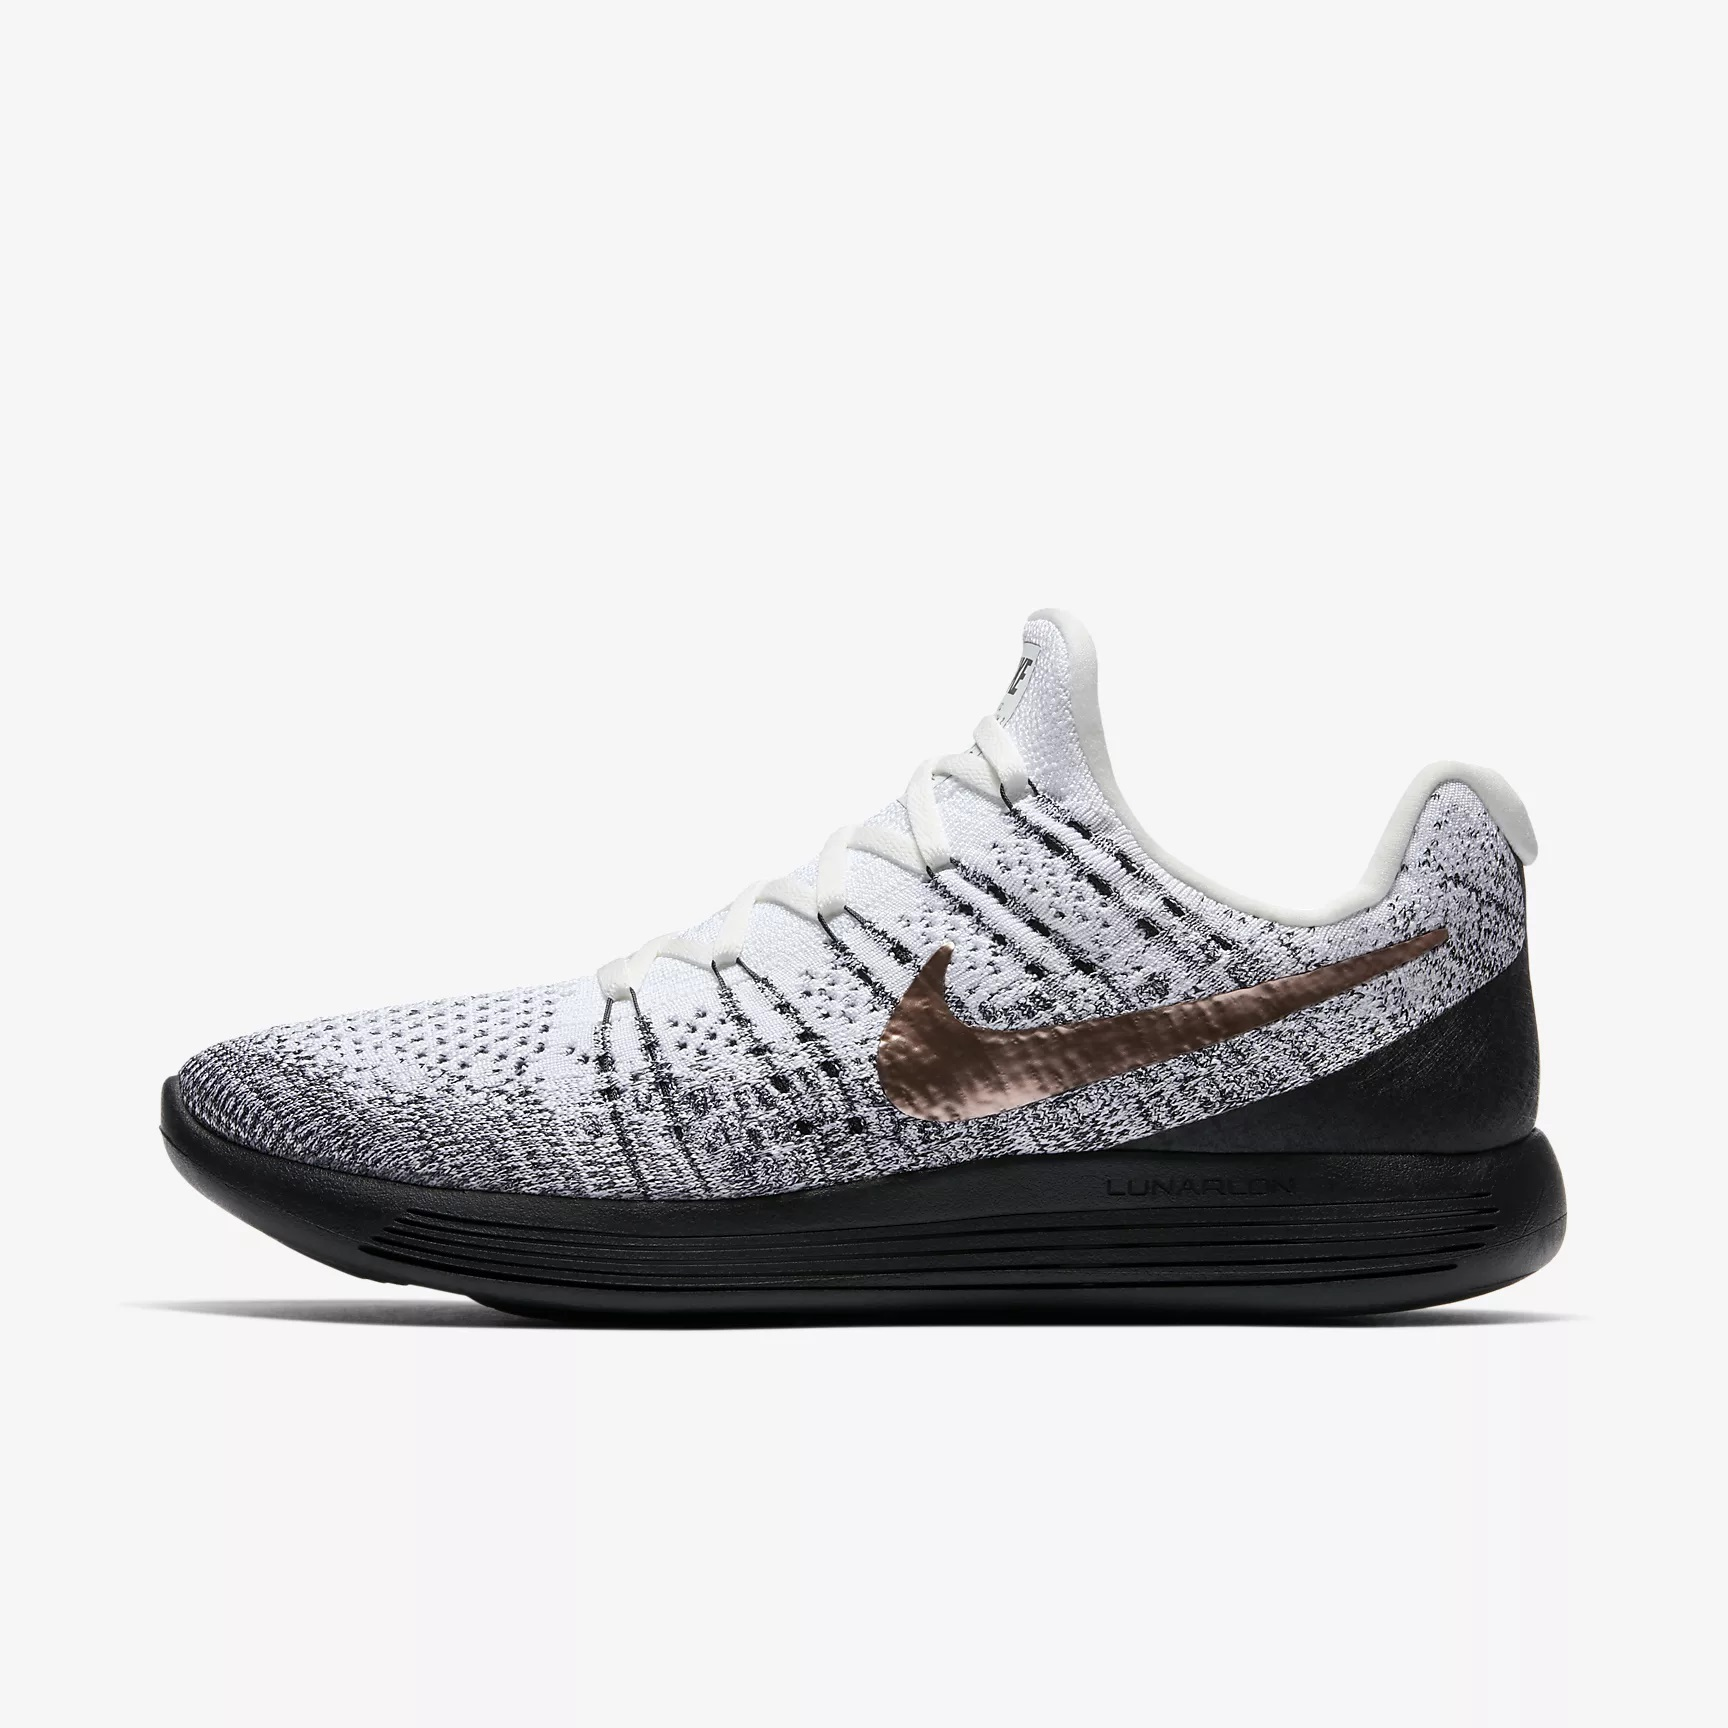 【送料込み】 メンズ NIKE LUNAREPIC LOW FLYKNIT 2 EXPLORER